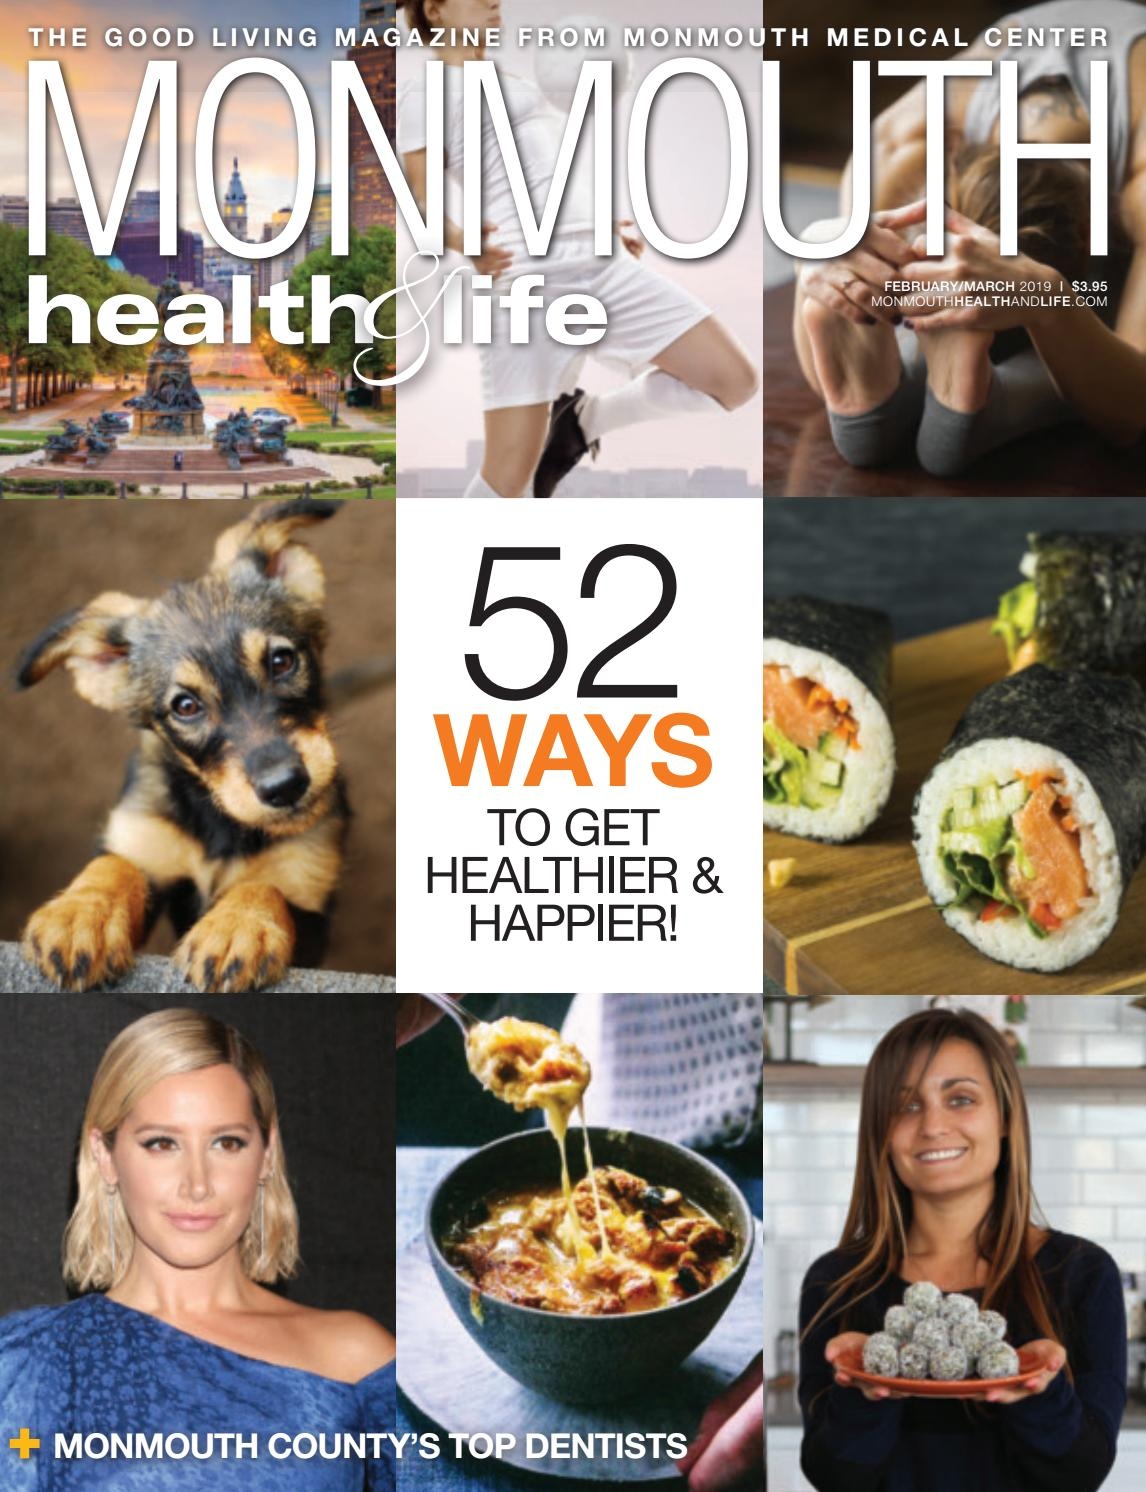 Monmouth Health & Life: February/March 2019 by Wainscot